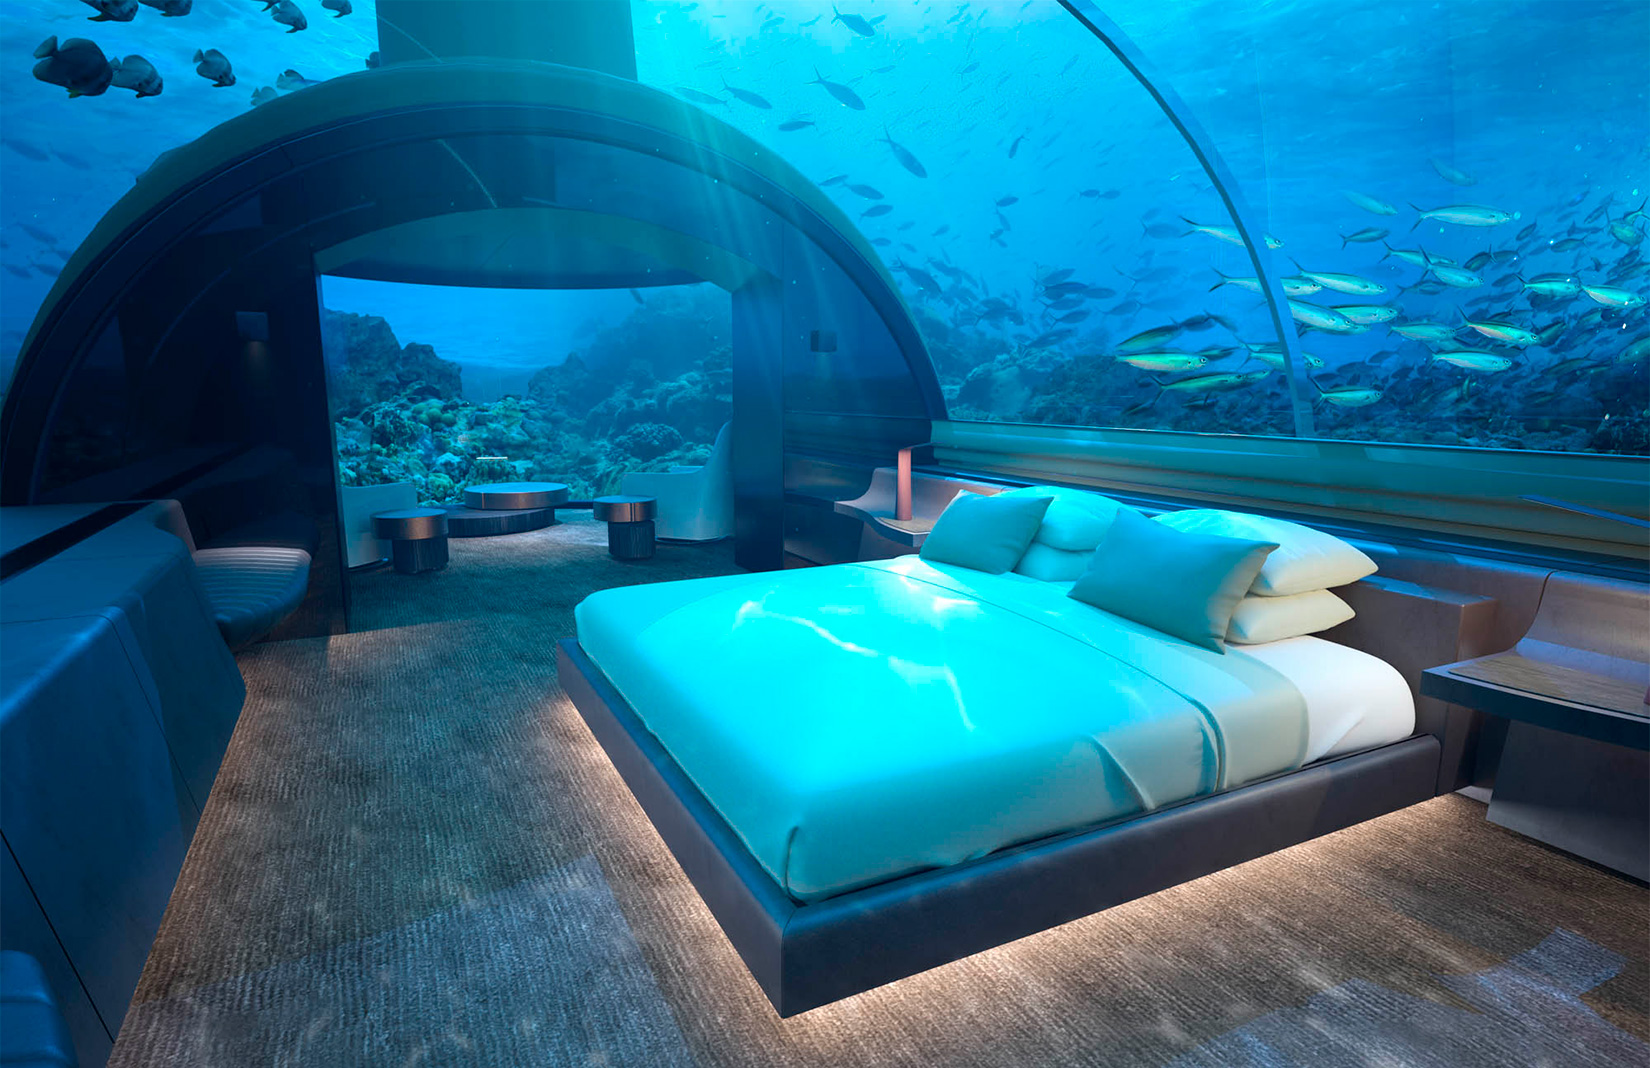 Stay in a tropical underwater villa for $50,000 per night